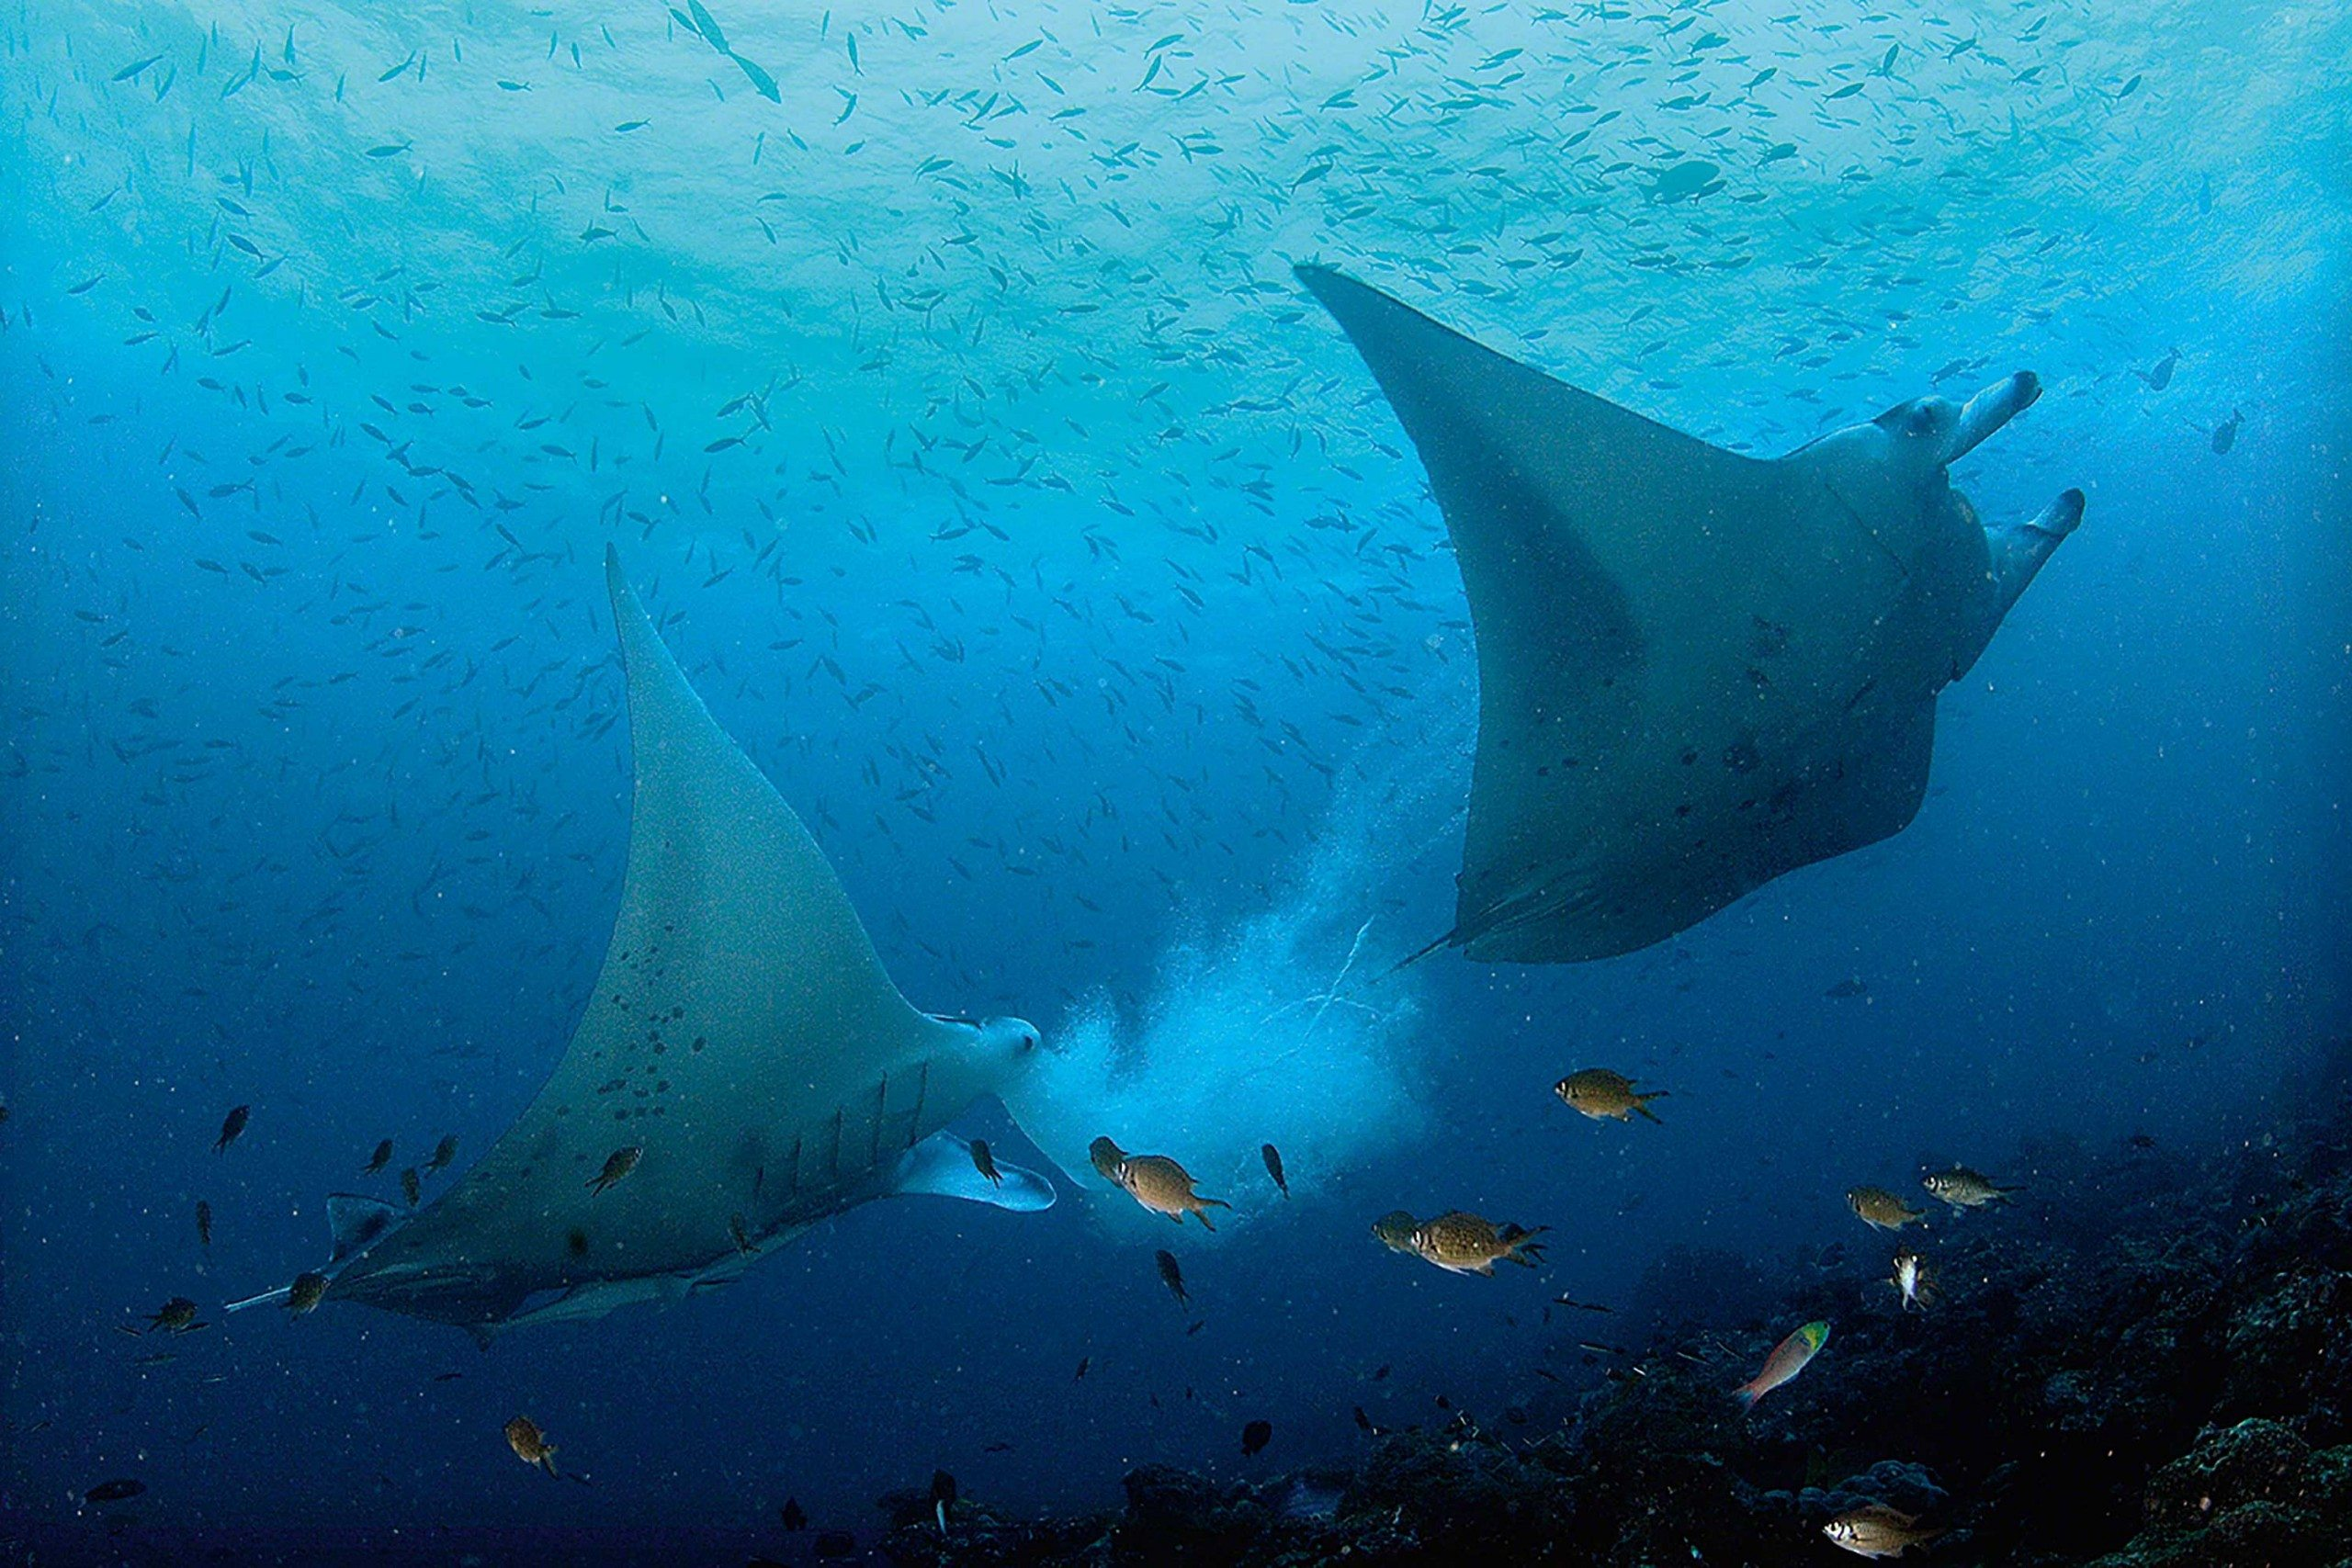 Manta ray swimming underwater with its dorsal fins spread open viewed - A Cloudy Gill Full Of Detritus And Trapped Plankton Is Coughed Up By A Manta As It Hovers Above A Cleaning Station Providing An Extra Tasty Treat For